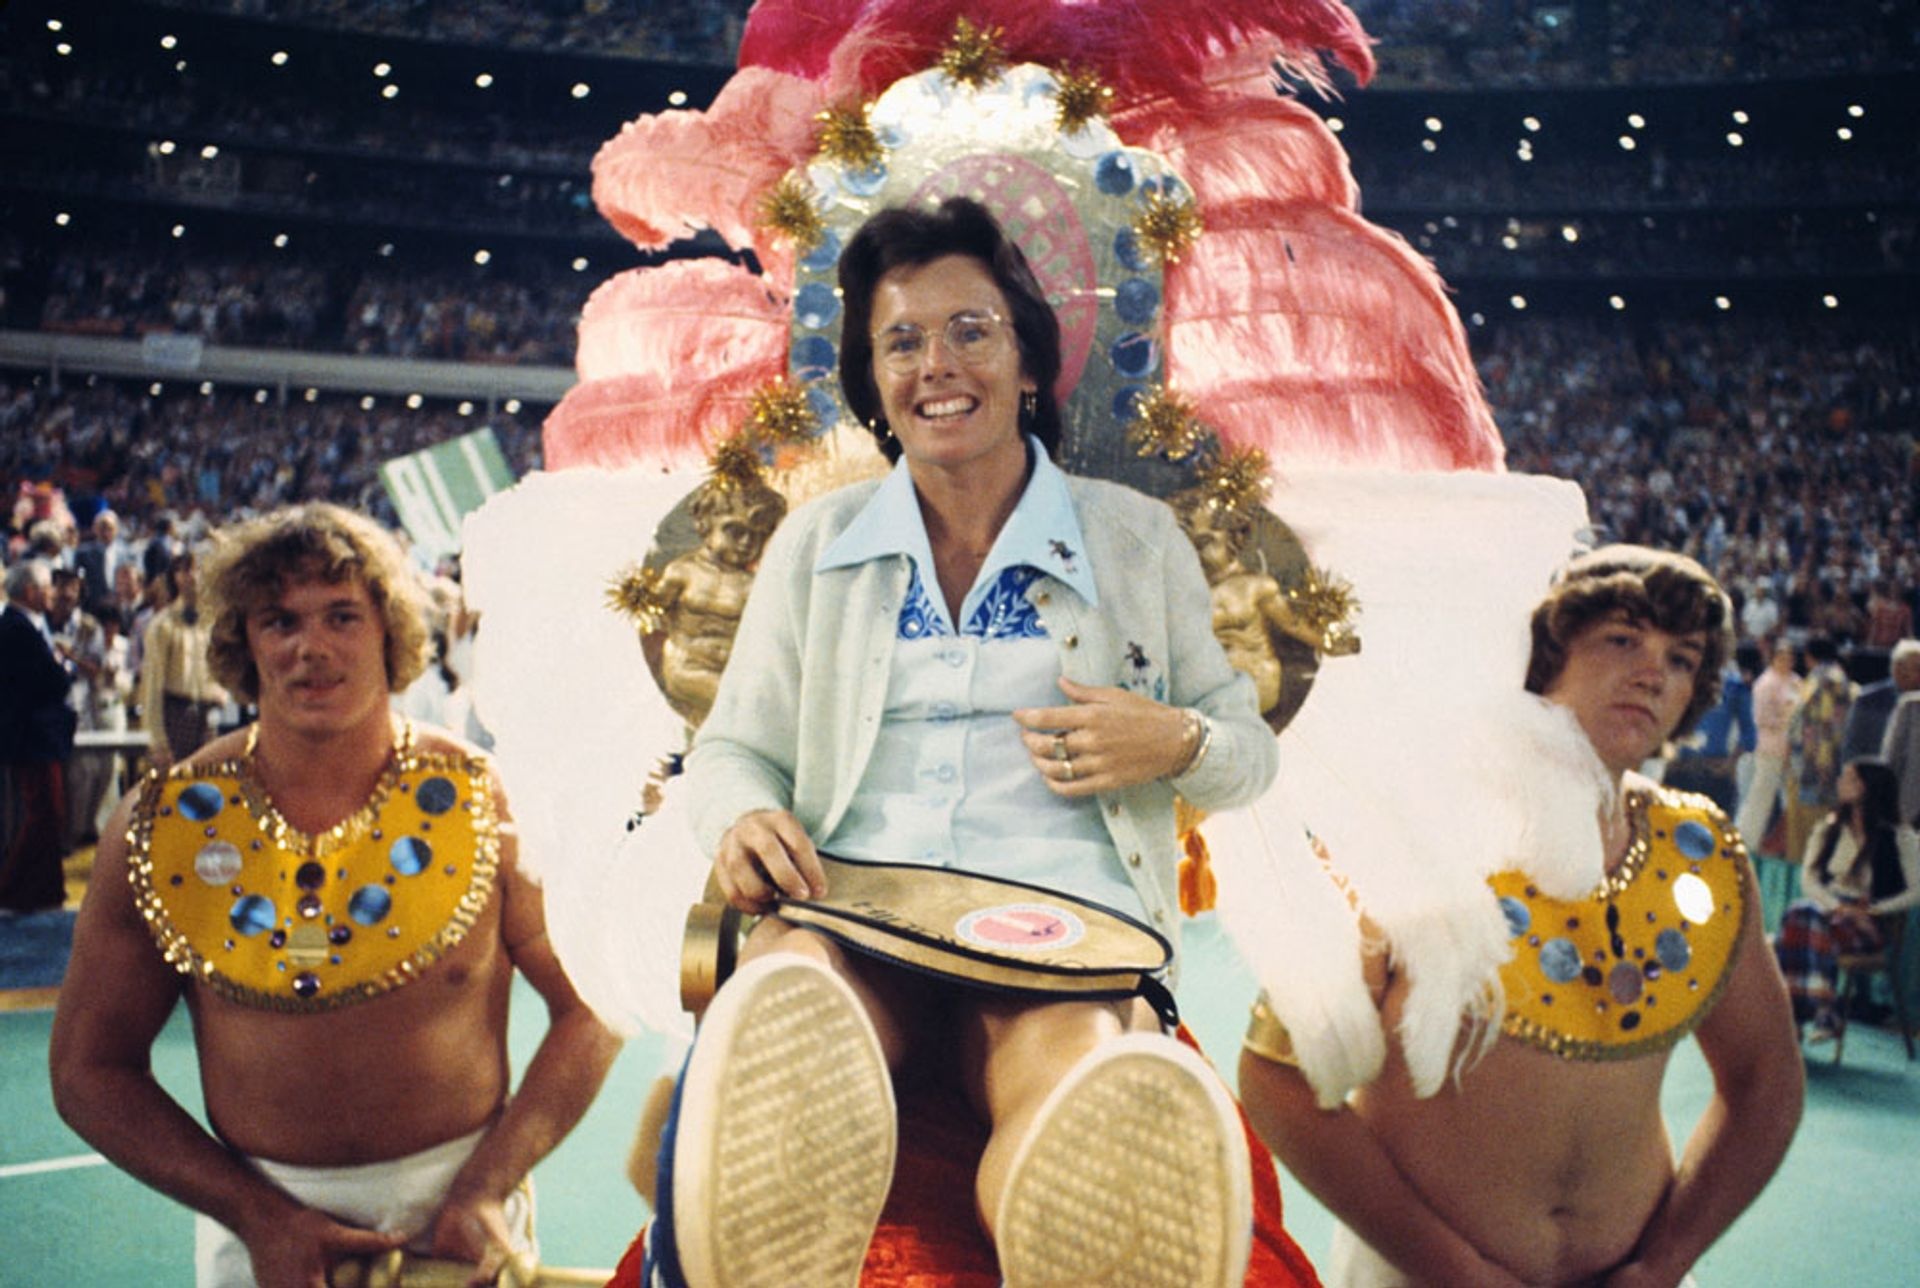 """Billie Jean King was carried into the Houston Astrodome to play Bobby Riggs in the """"Battle of the Sexes"""" match, which an estimated 90 million people around the world watched on 20 September 1973 Bettmann Archive/Getty Images"""